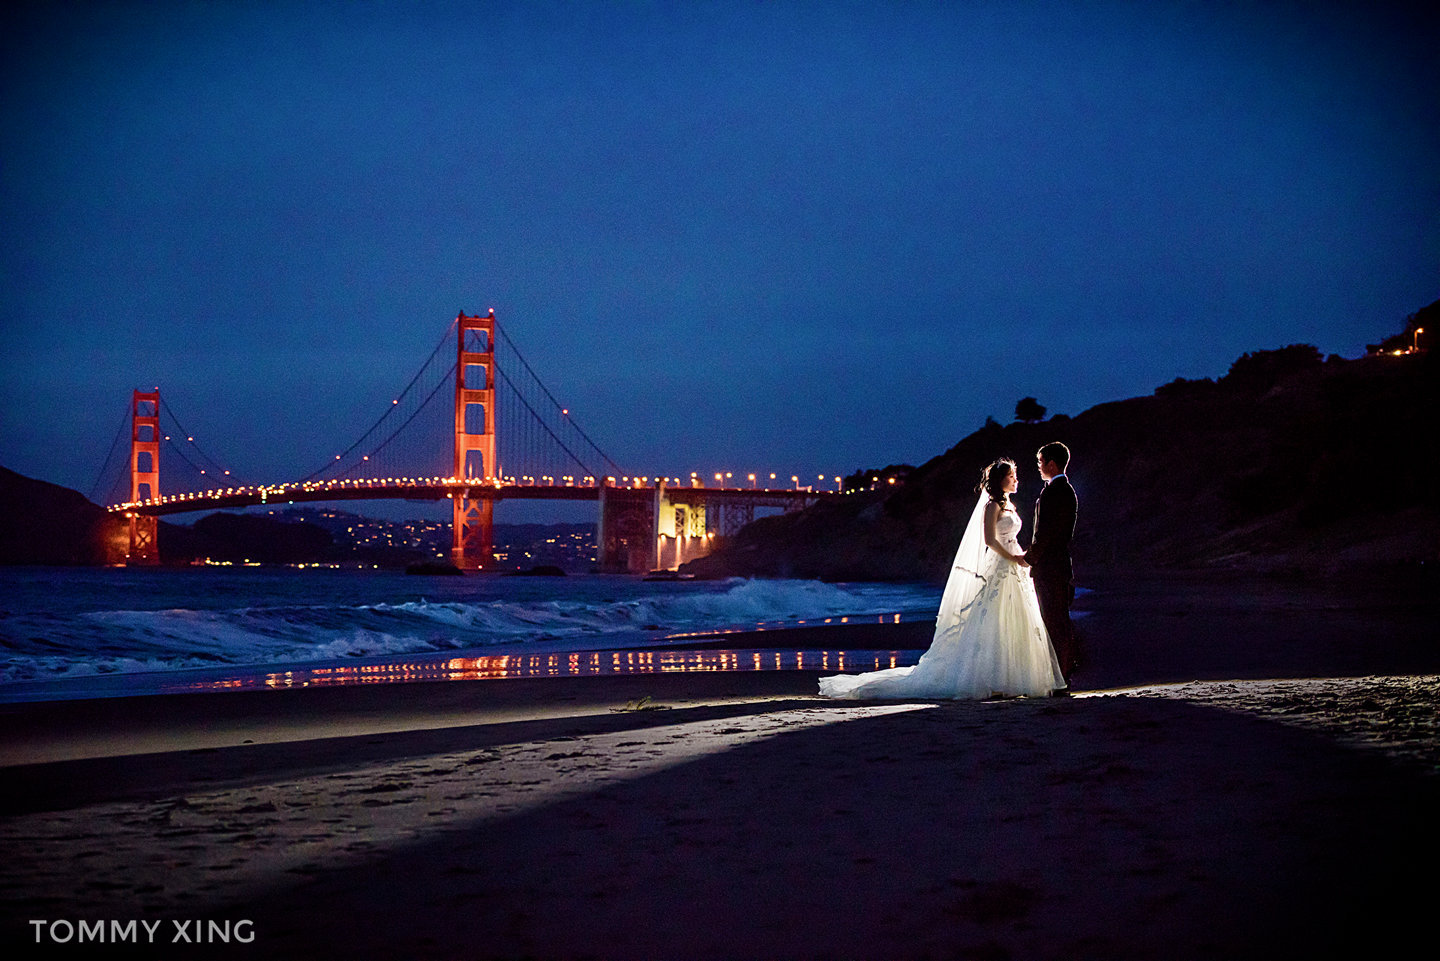 San Francisco Bay Area Chinese Pre Wedding Photographer Tommy Xing 旧金山湾区婚纱照摄影 08.jpg